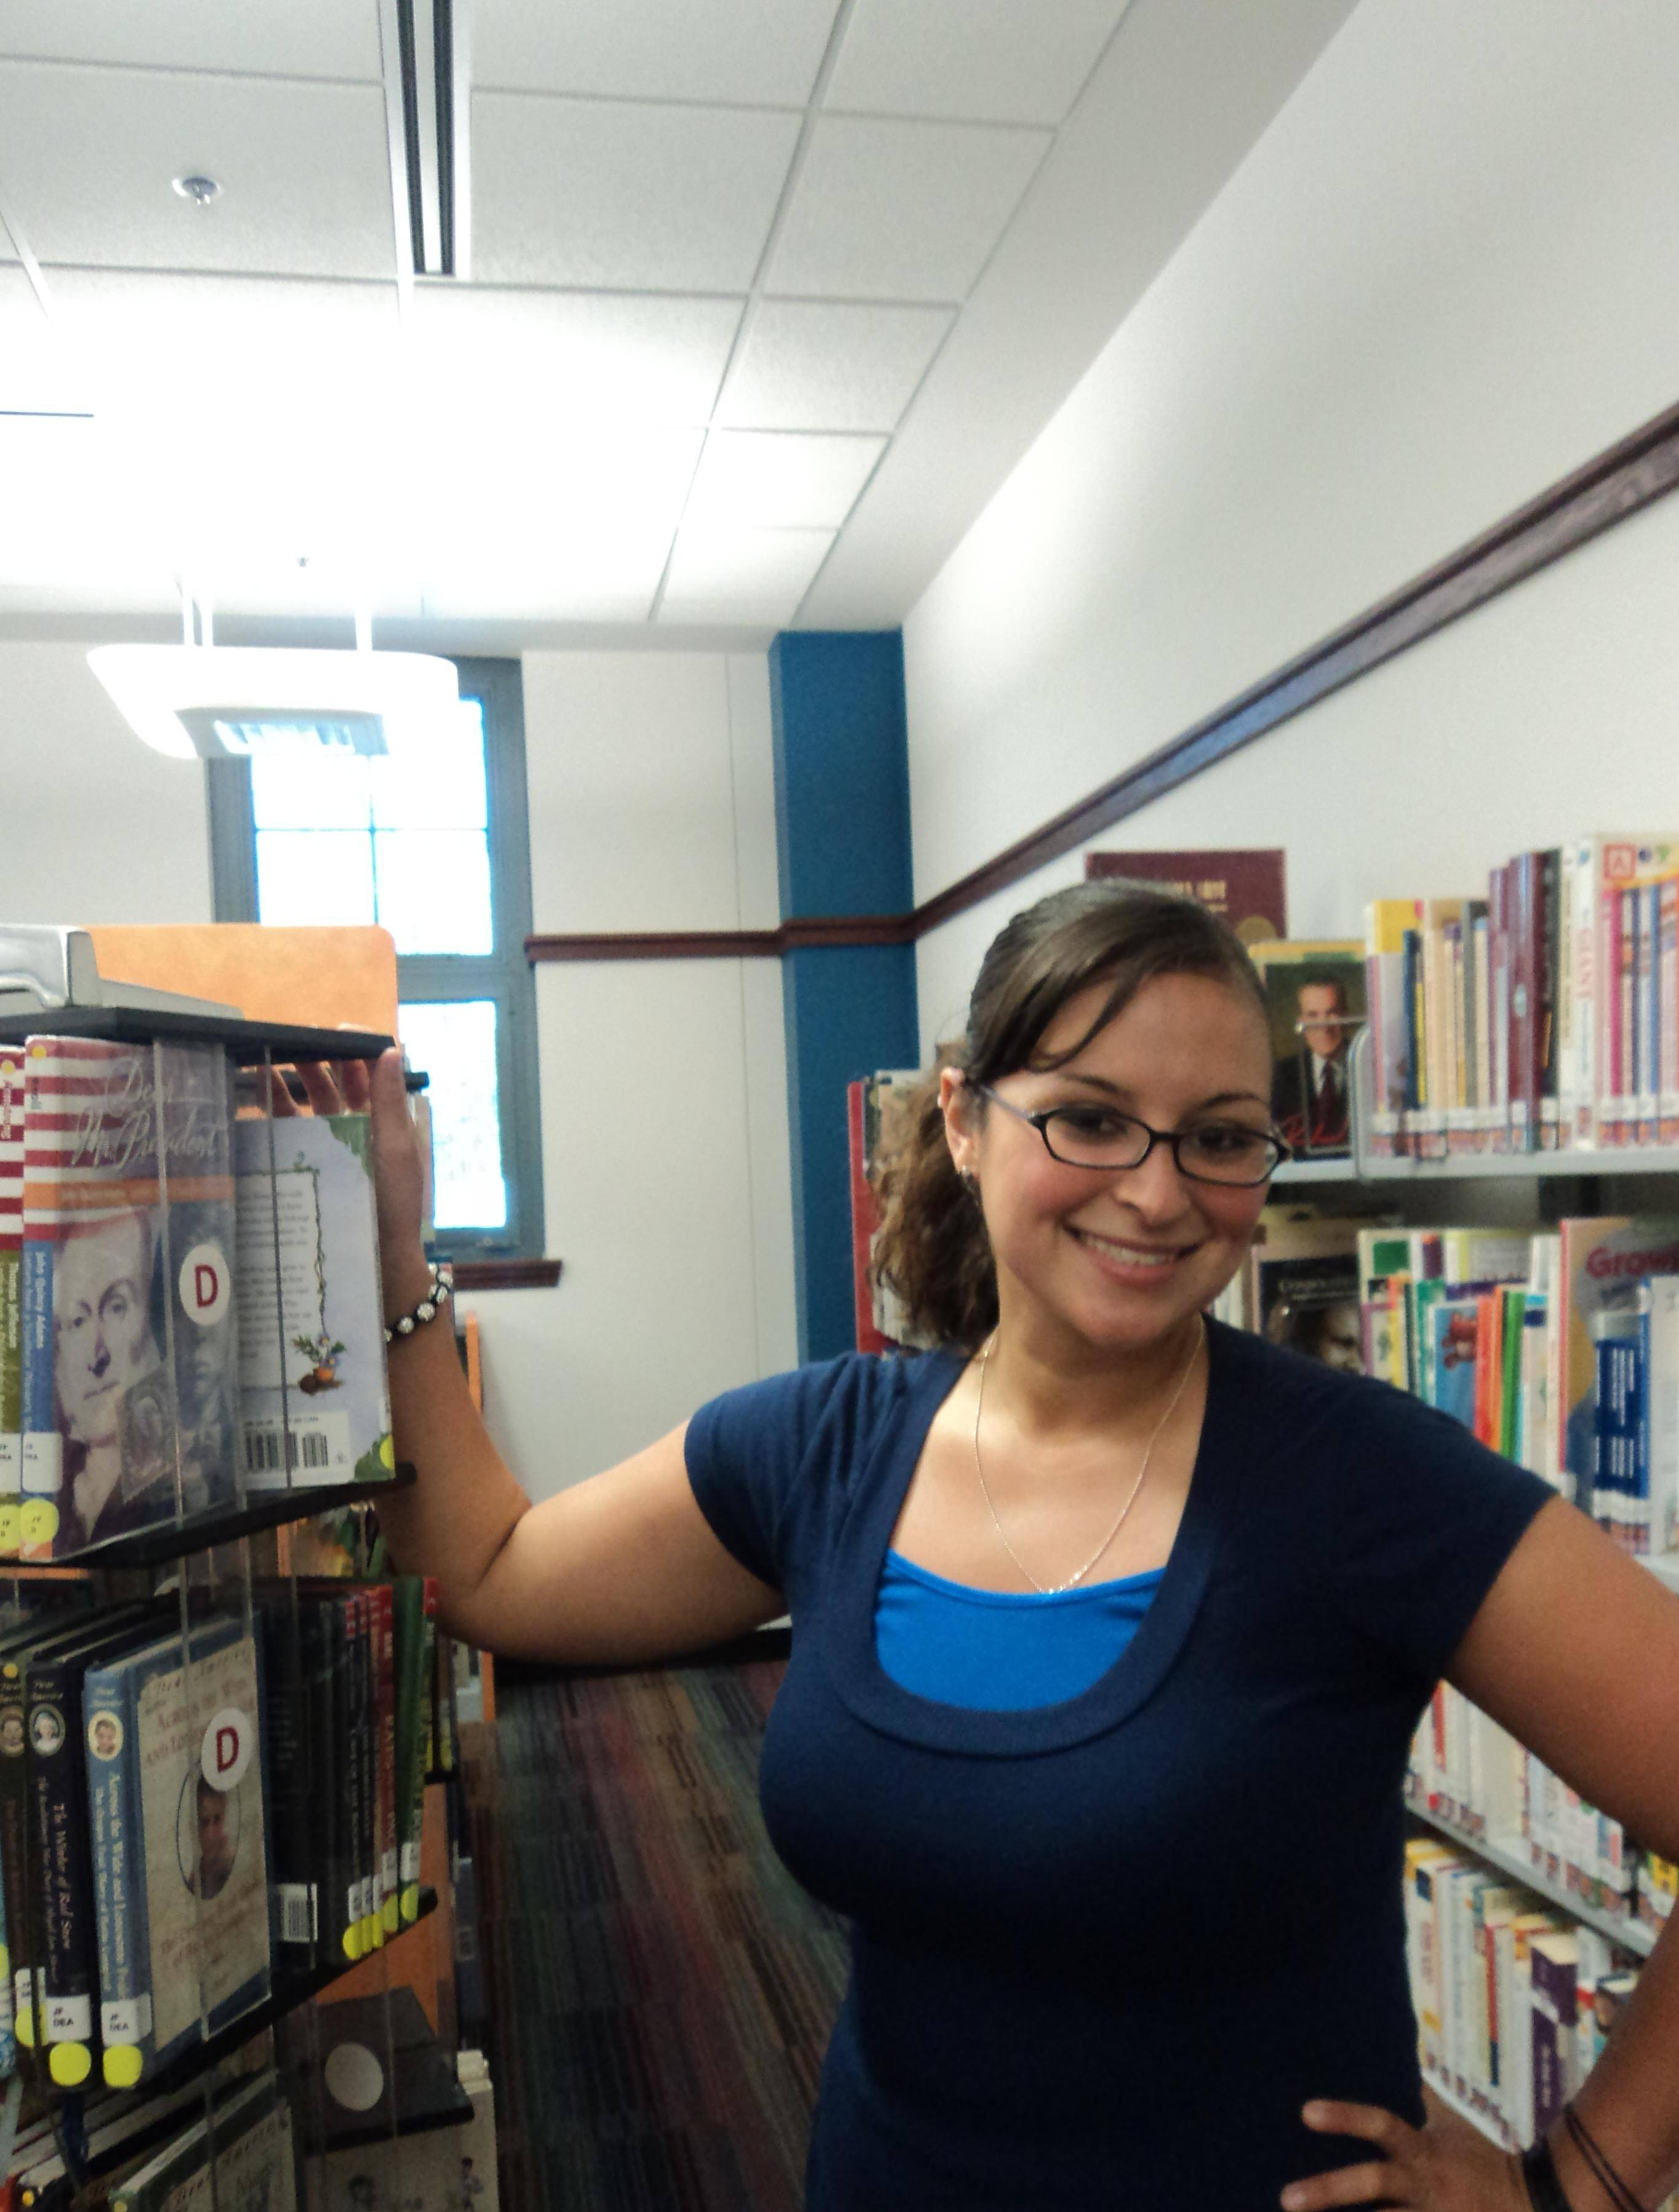 Dominique Roman is a Youth Services Librarian at the West Chicago Public Library District.